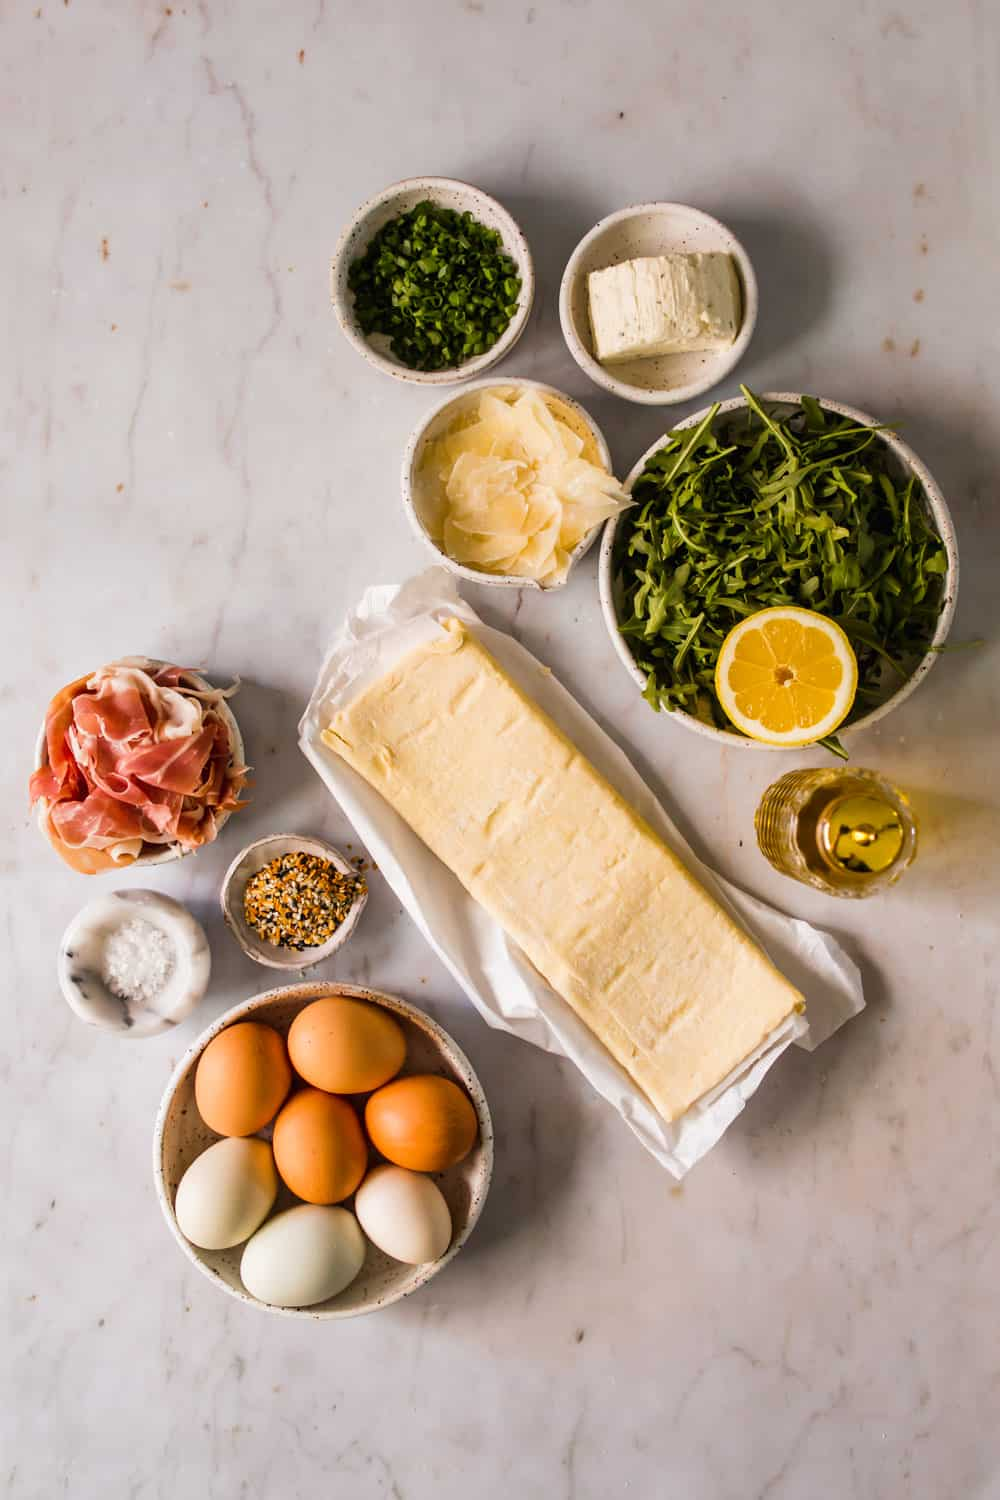 small white bowls with greens, cheese, herbs, meat, eggs, and seasonings next to a large piece of raw puff pastry